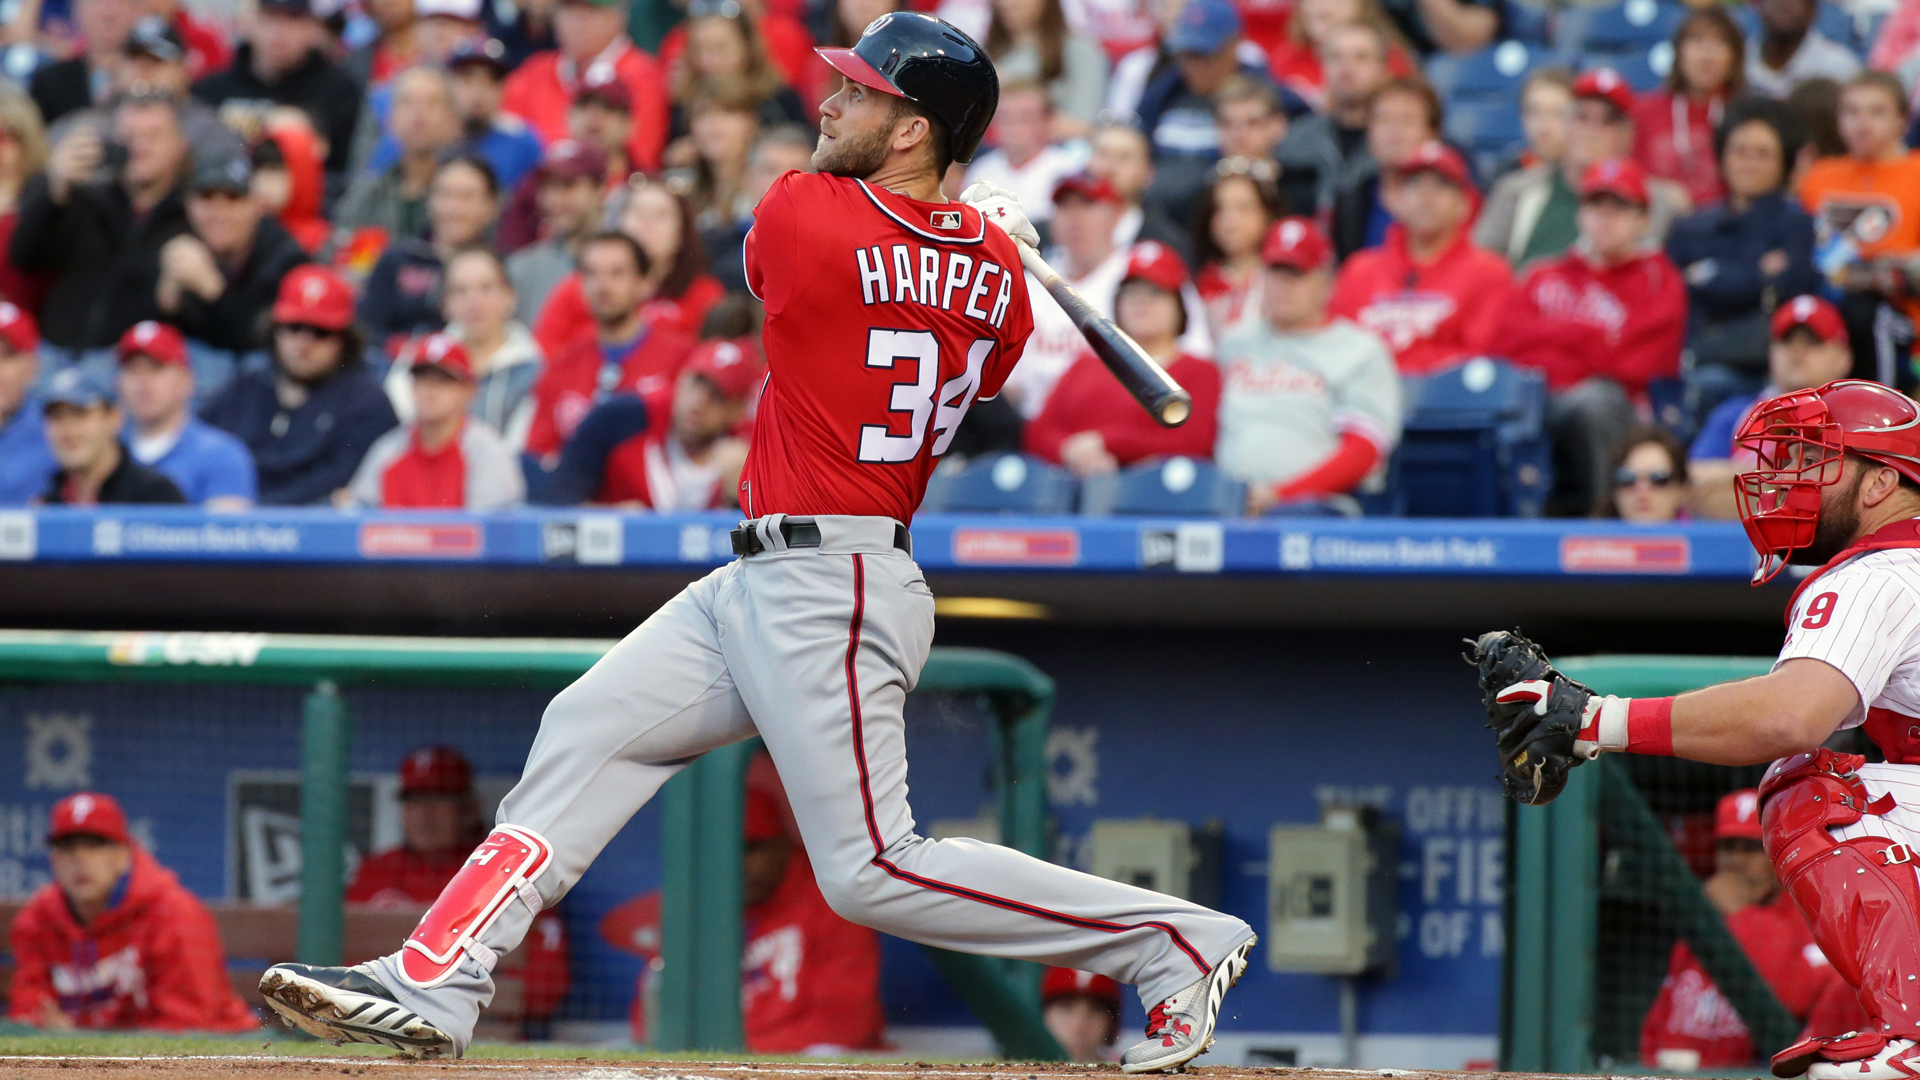 Bryce Harper leadoff experiment pays off for Nationals